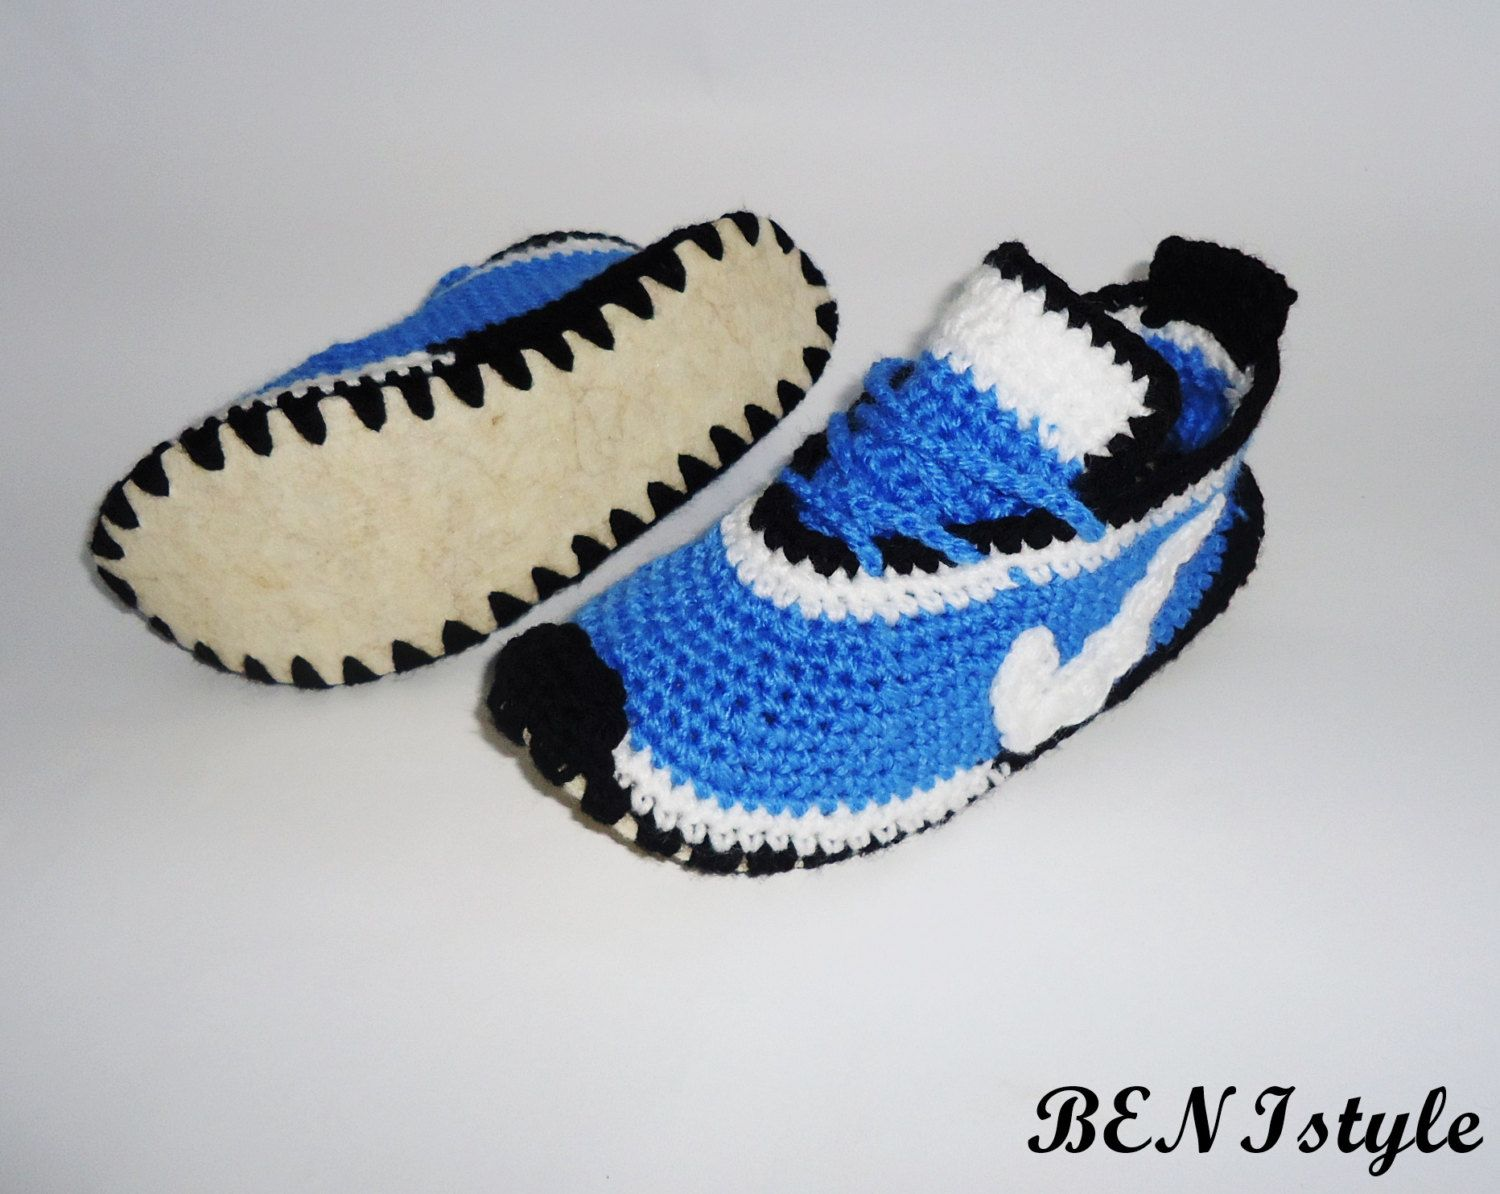 Adult Sneakers, Crochet Shoes, Crochet Blue Shoes, House Slippers, Crochet  Nike Sneakers, Home Shoes, Blue House Sneakers, Warm Shoes